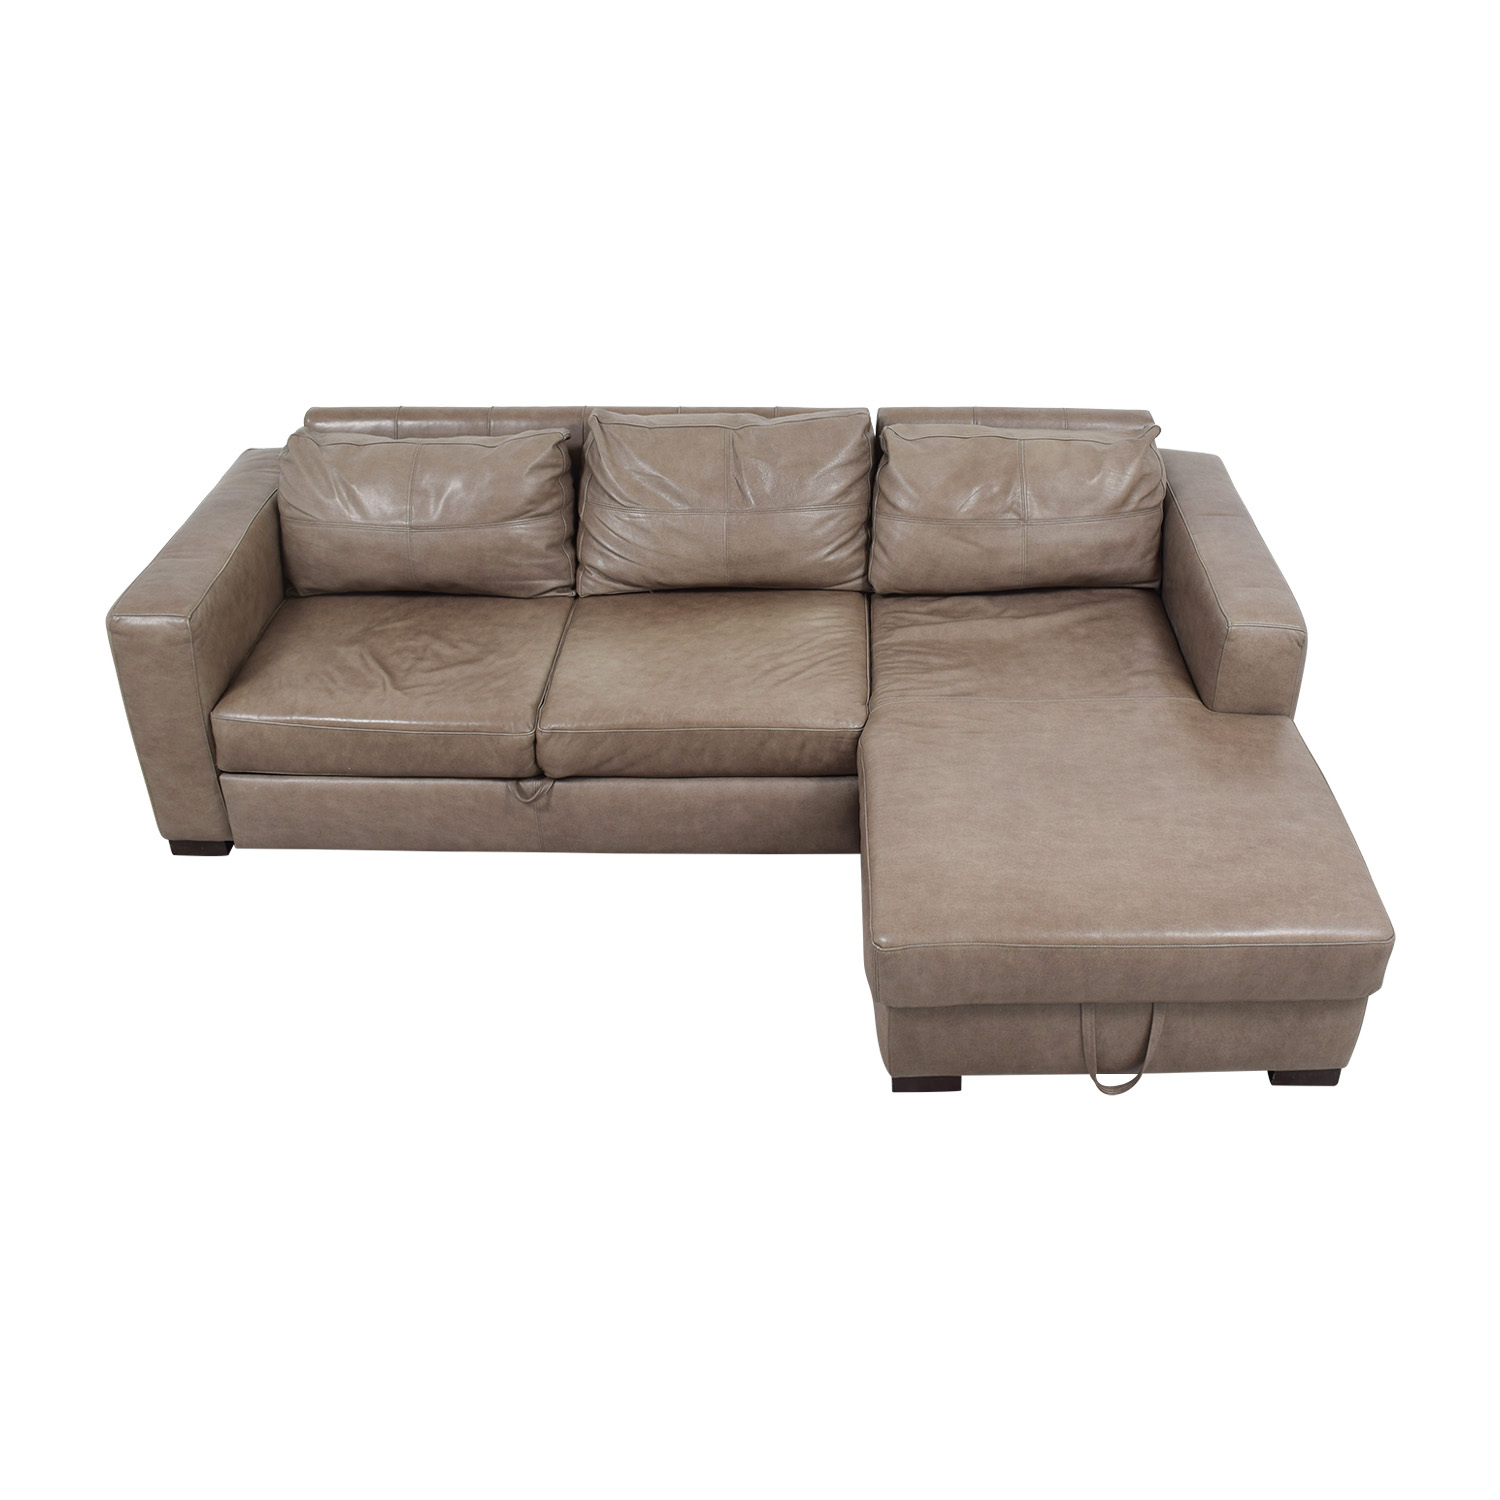 arhaus leather sofa memory foam topper sofas used for sale